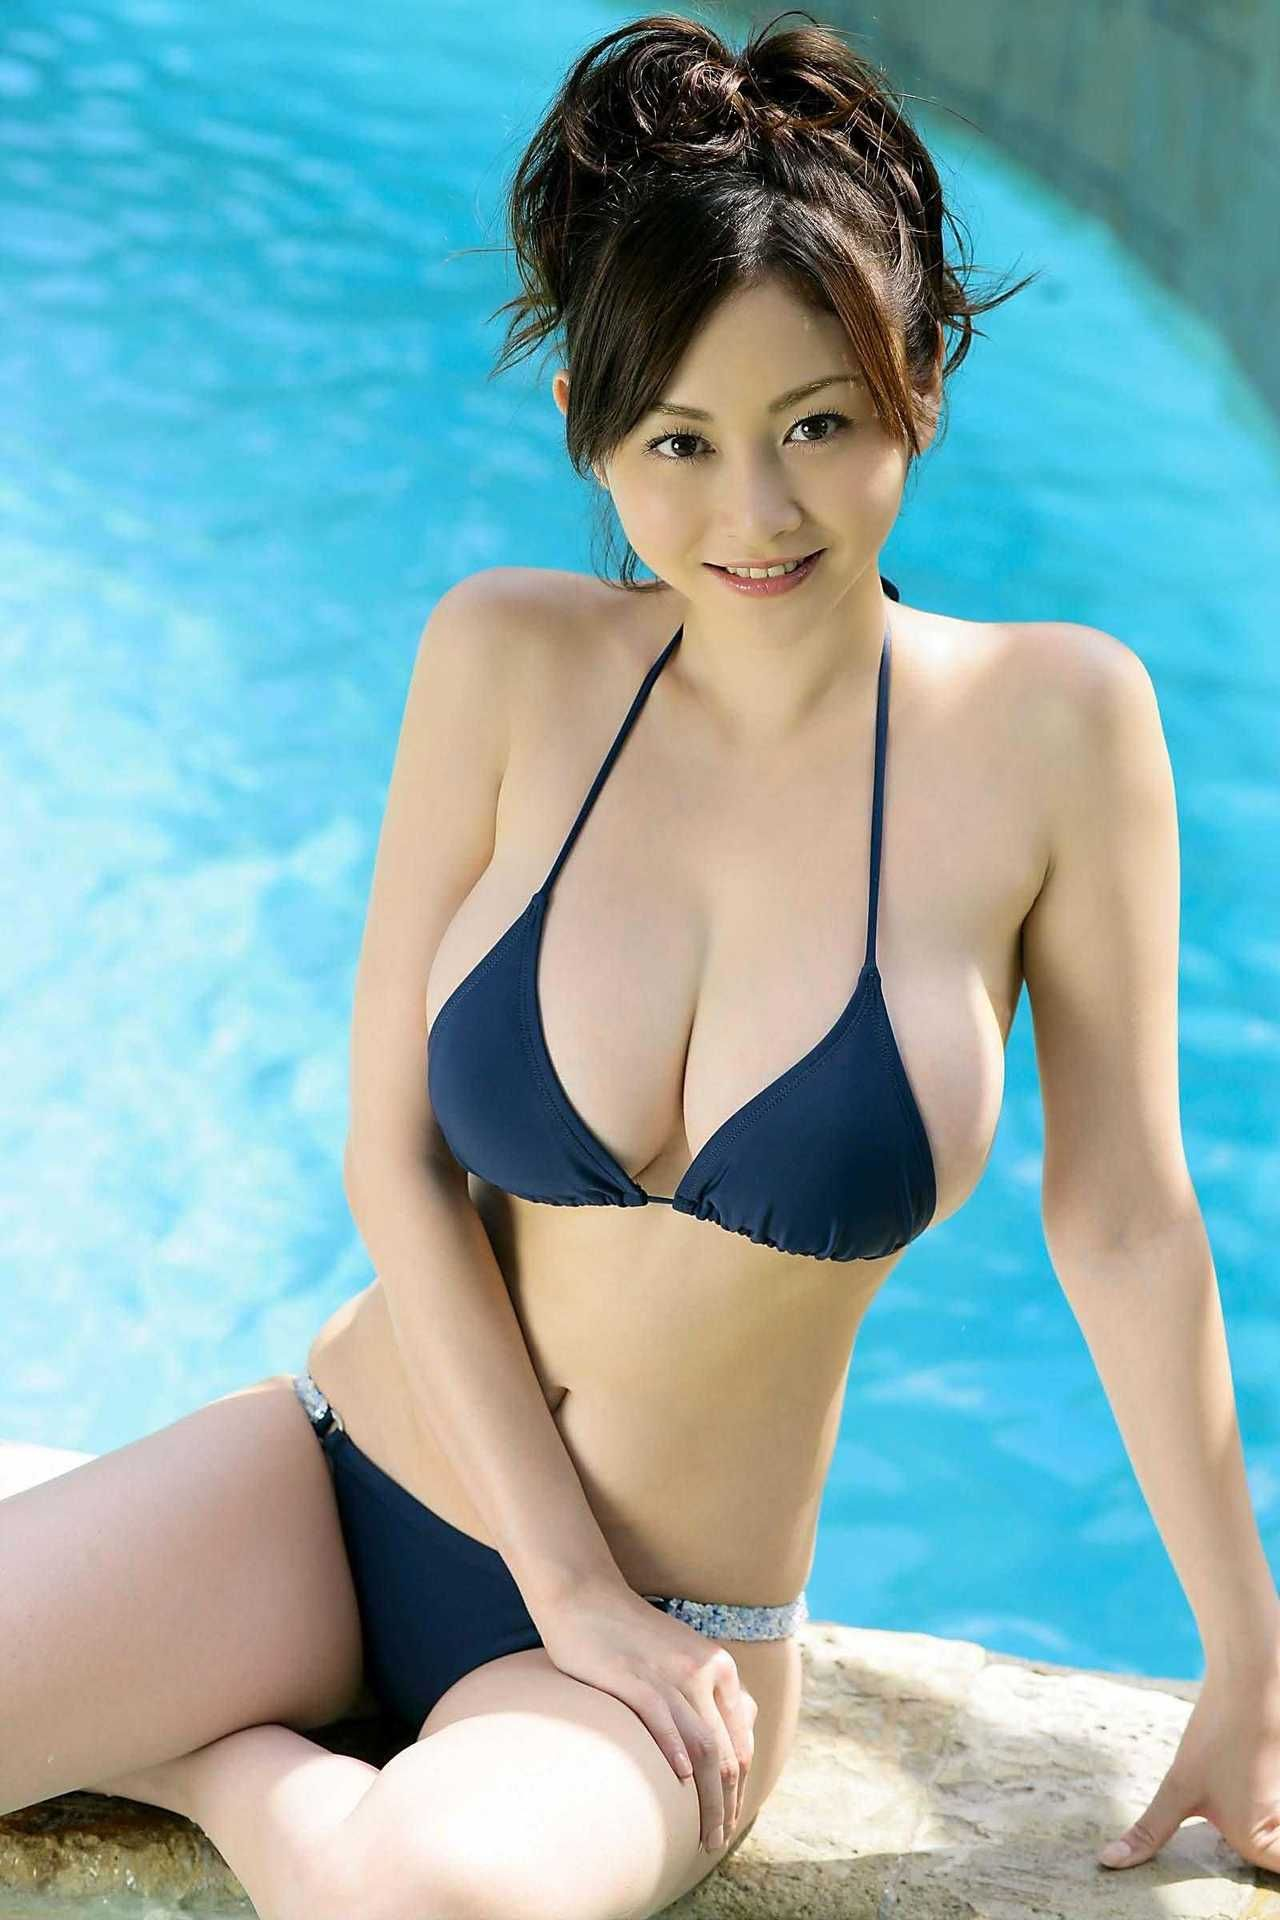 Video Anri Sugihara nudes (54 photo), Ass, Fappening, Boobs, panties 2006